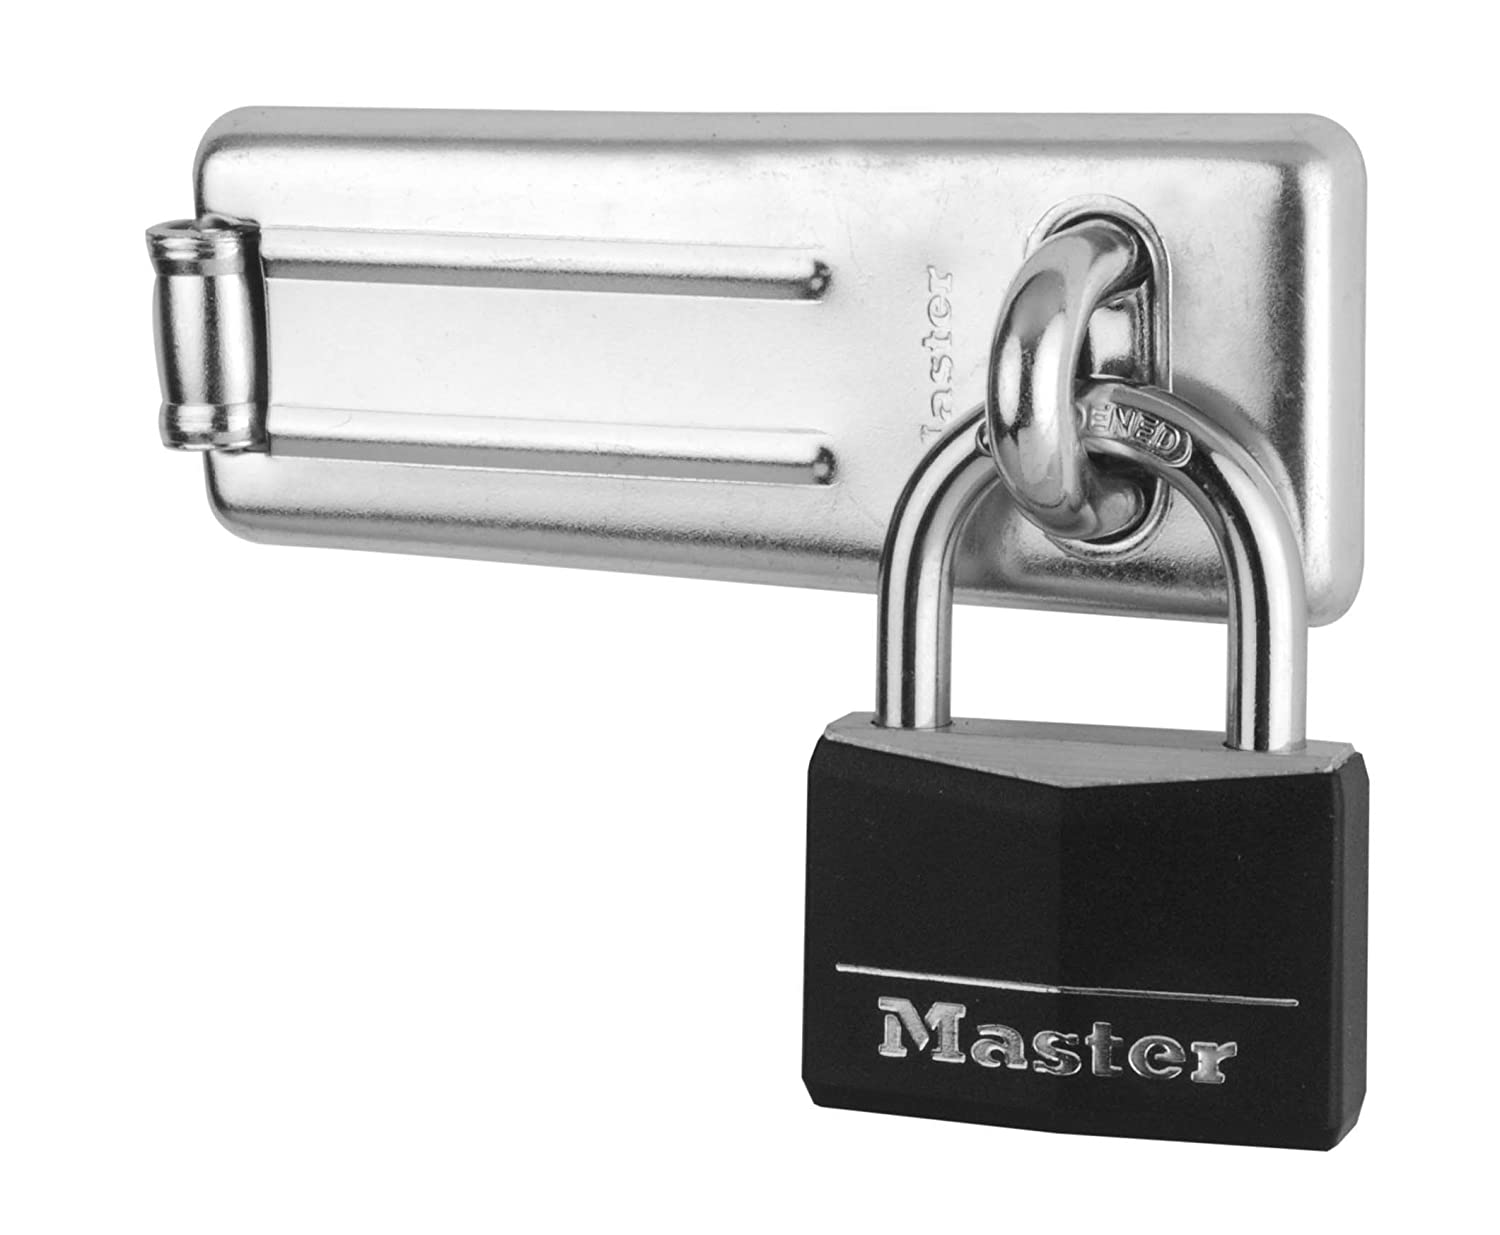 Master Lock Padlock, Aluminum Padlock with Hasp, Key Lock, Best Used as a Gate Lock, Shed Lock, Cabinet Lock and More 9150704EURDBLK